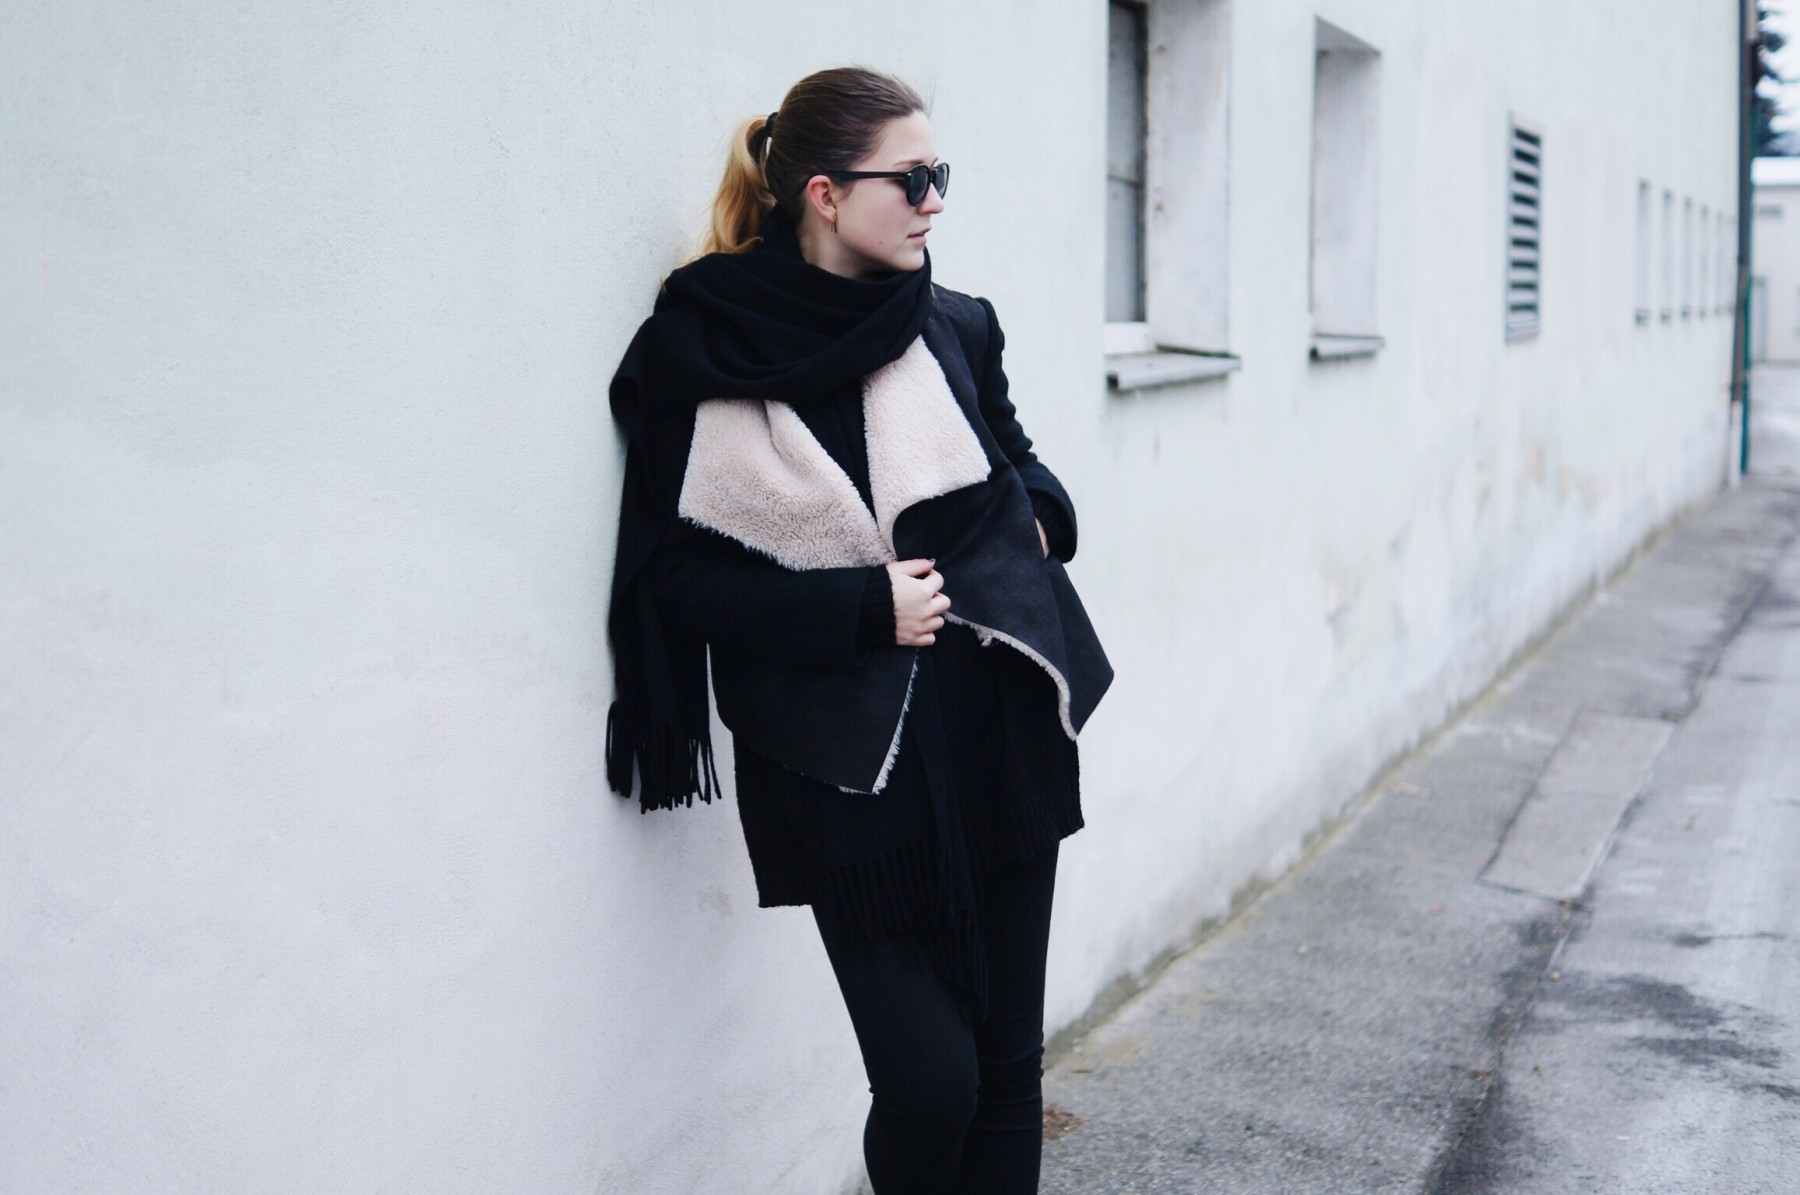 acne_studios_scarf_lambskin_jacket_winter_outfit5